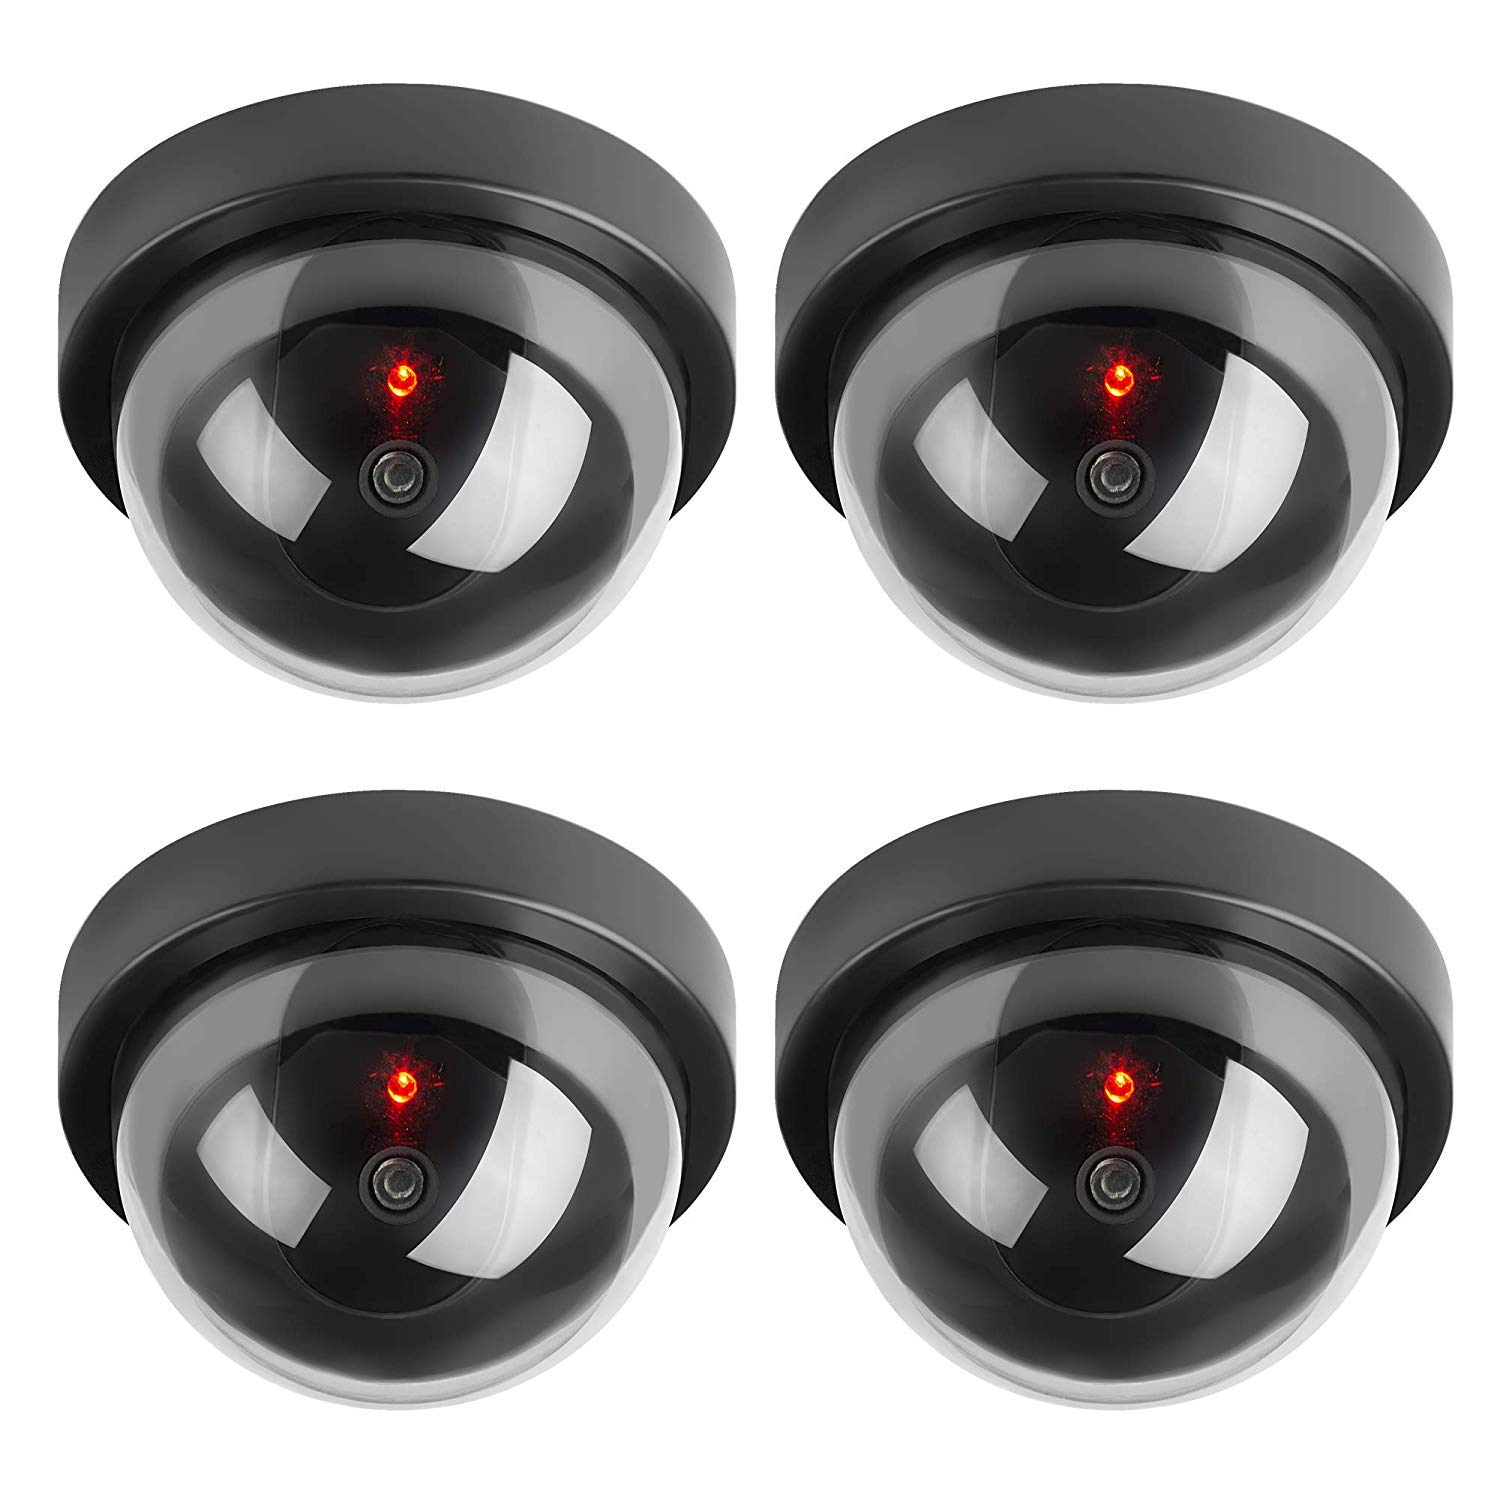 JOOAN Dummy Security Camera Indoor Dome Fake Security Camera Twinkle Red Led (4 Pack Dummy Camera)